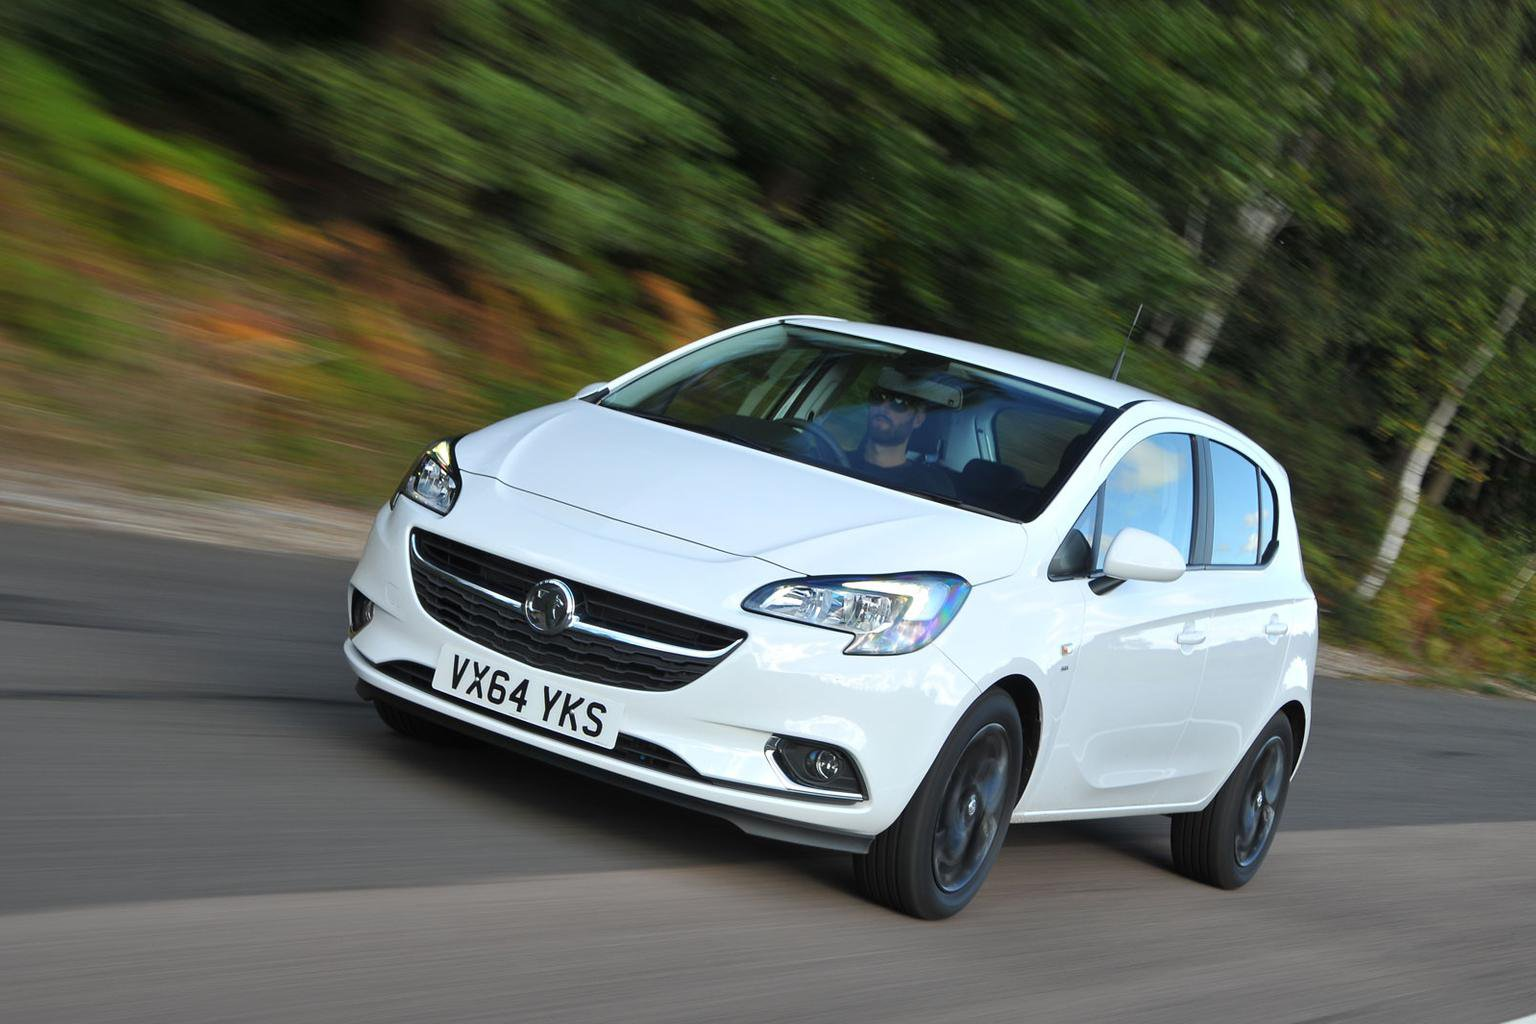 2014 Vauxhall Corsa review